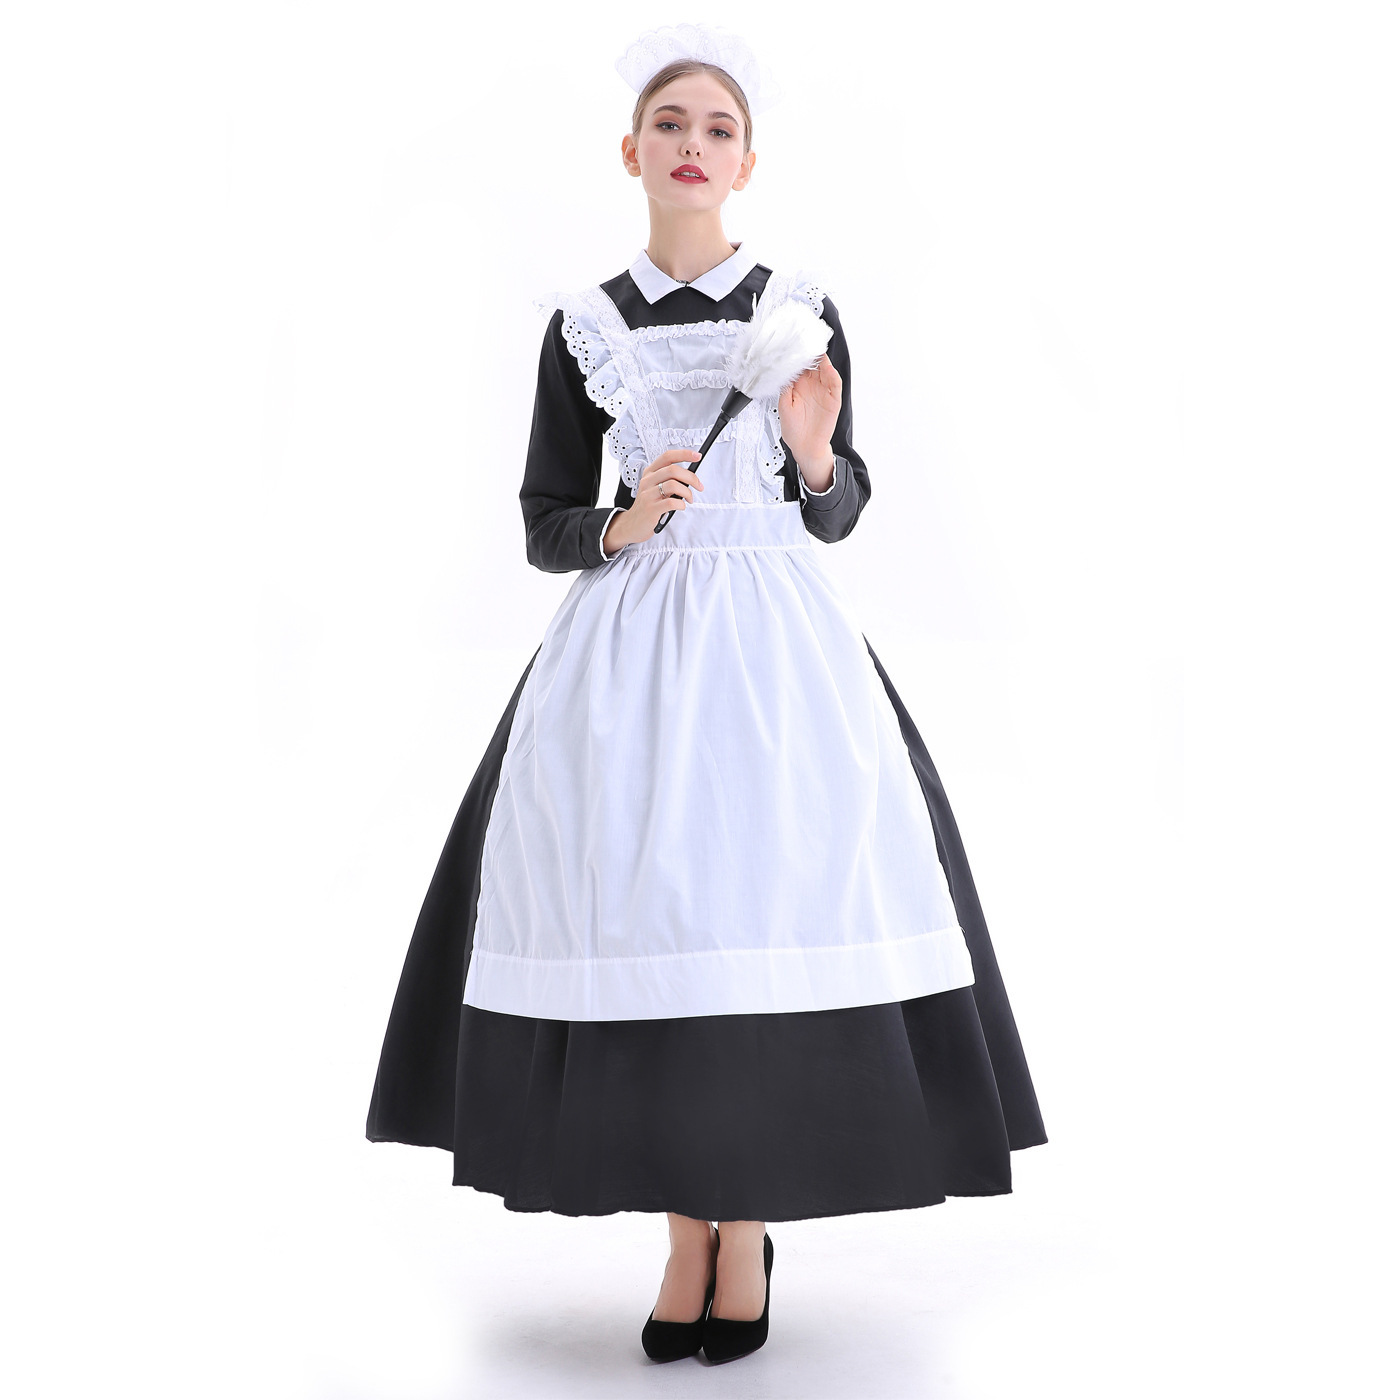 Halloween party costumes stage show costumes maids maids maids French manor maids role costumes